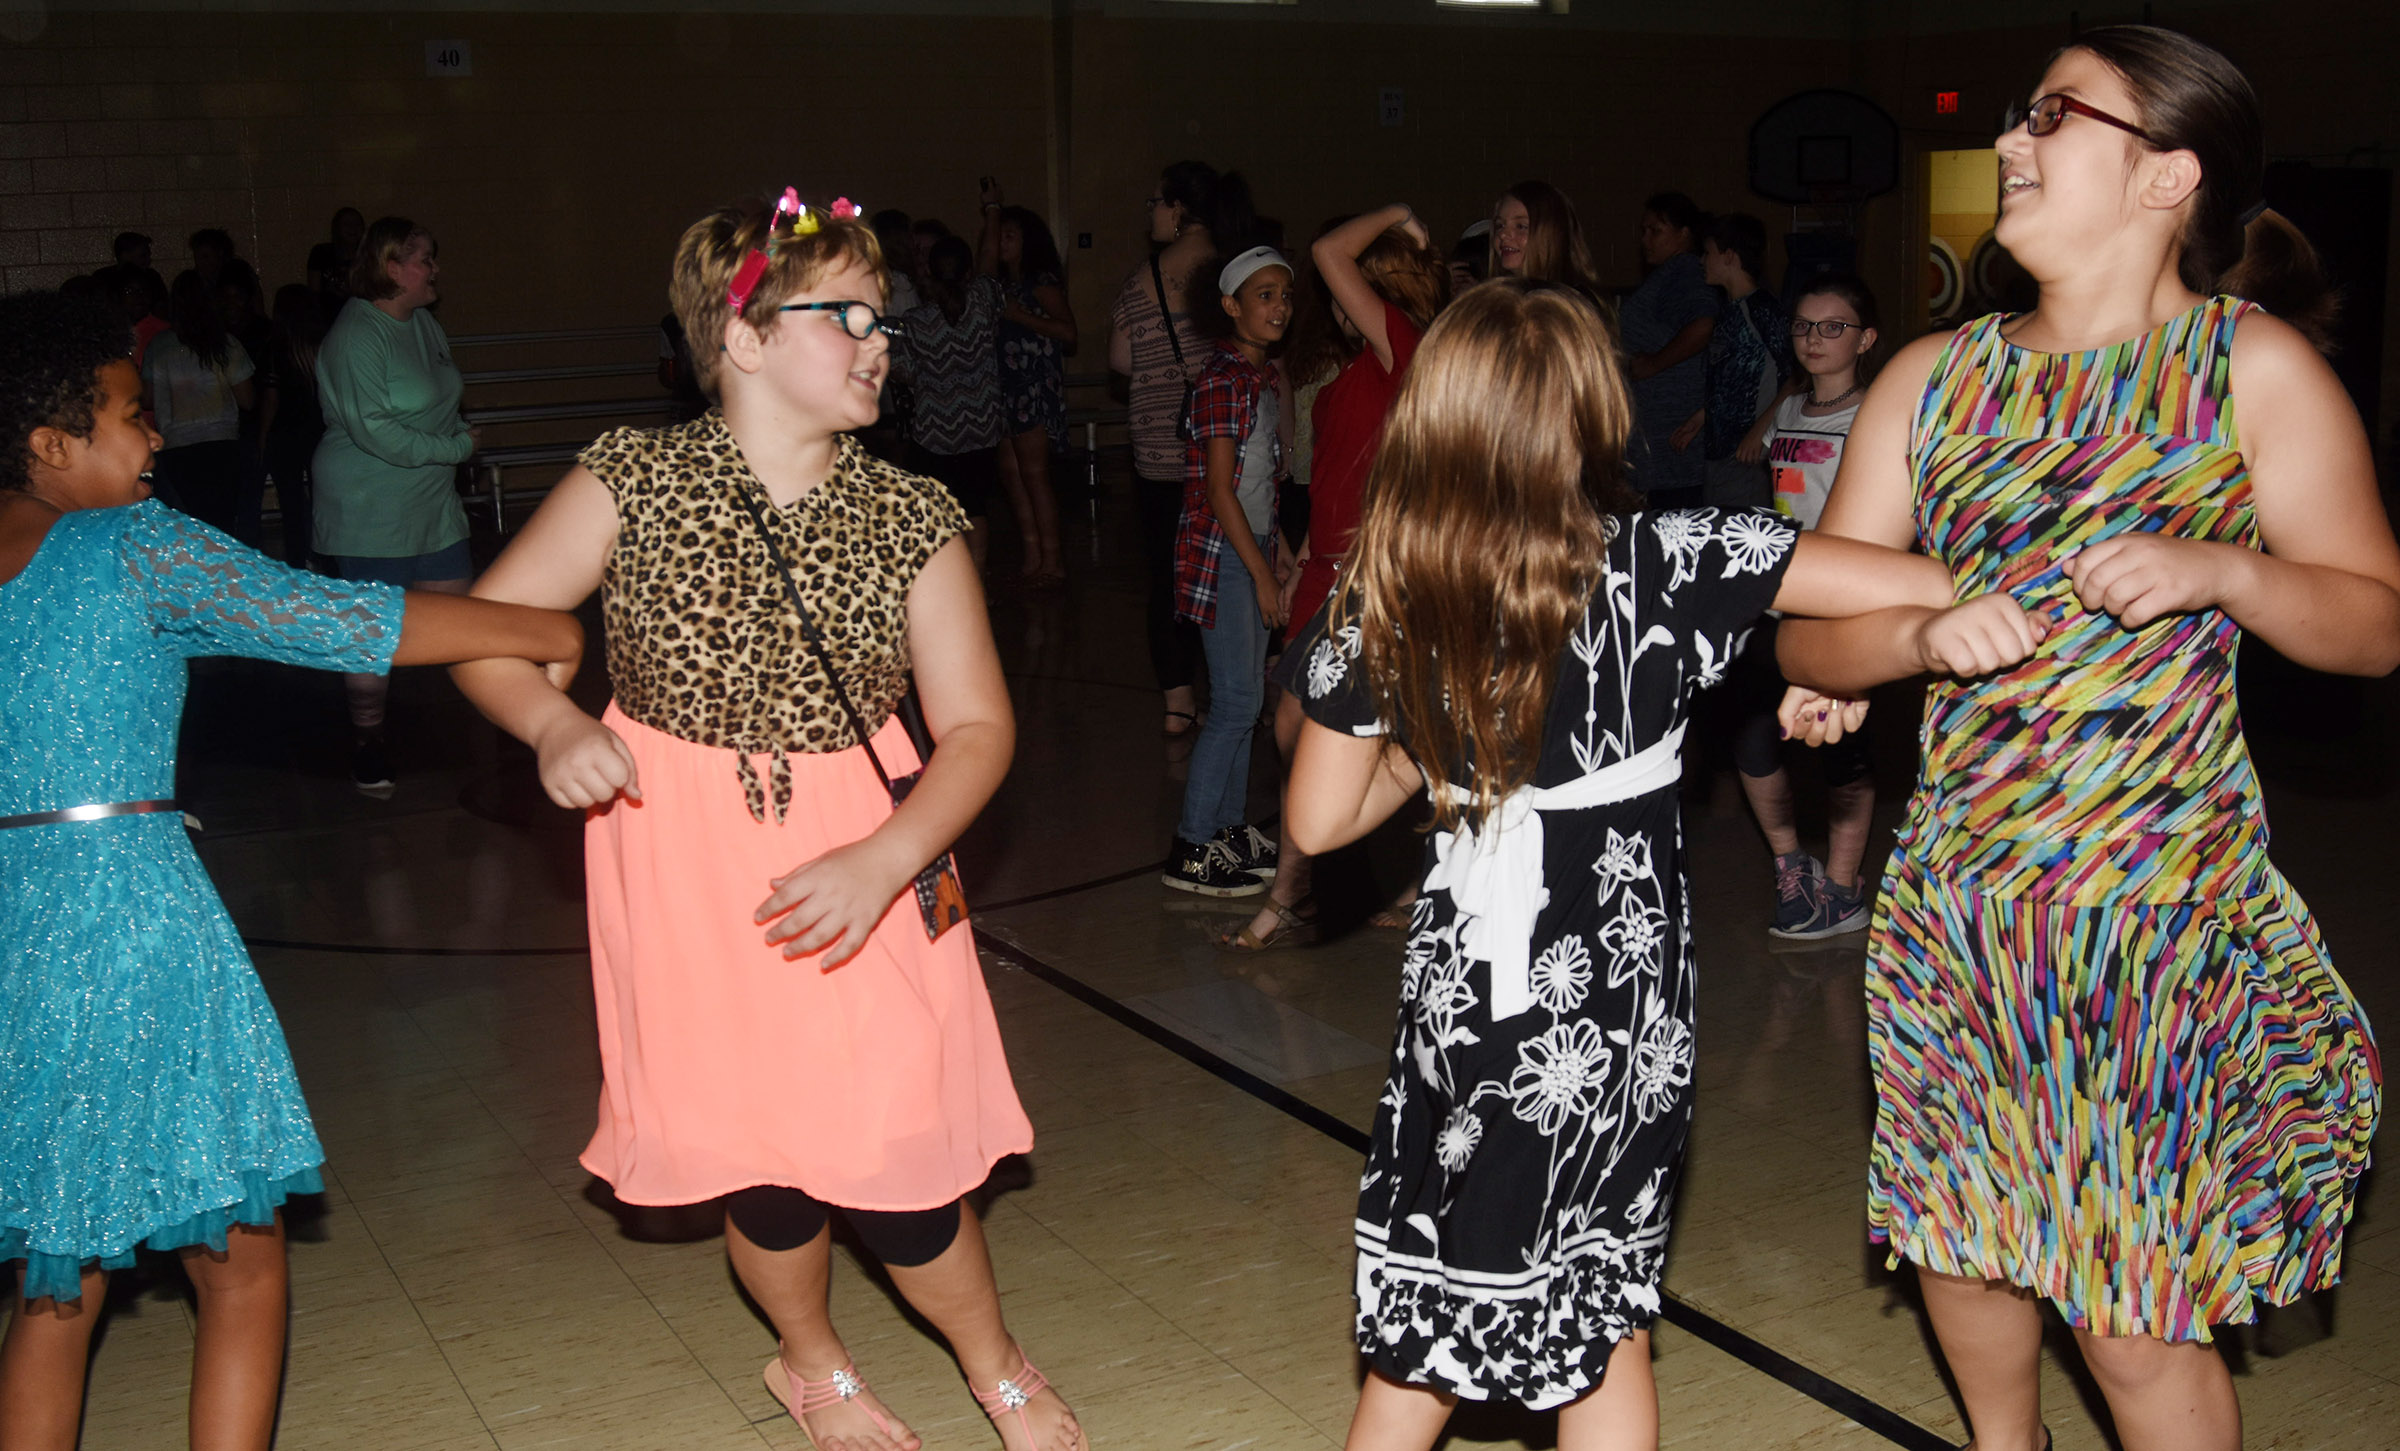 CMS sixth-graders, from left, Serenity Mings, Mellany Parker, Ellie Wise and Kylee Sowders dance.